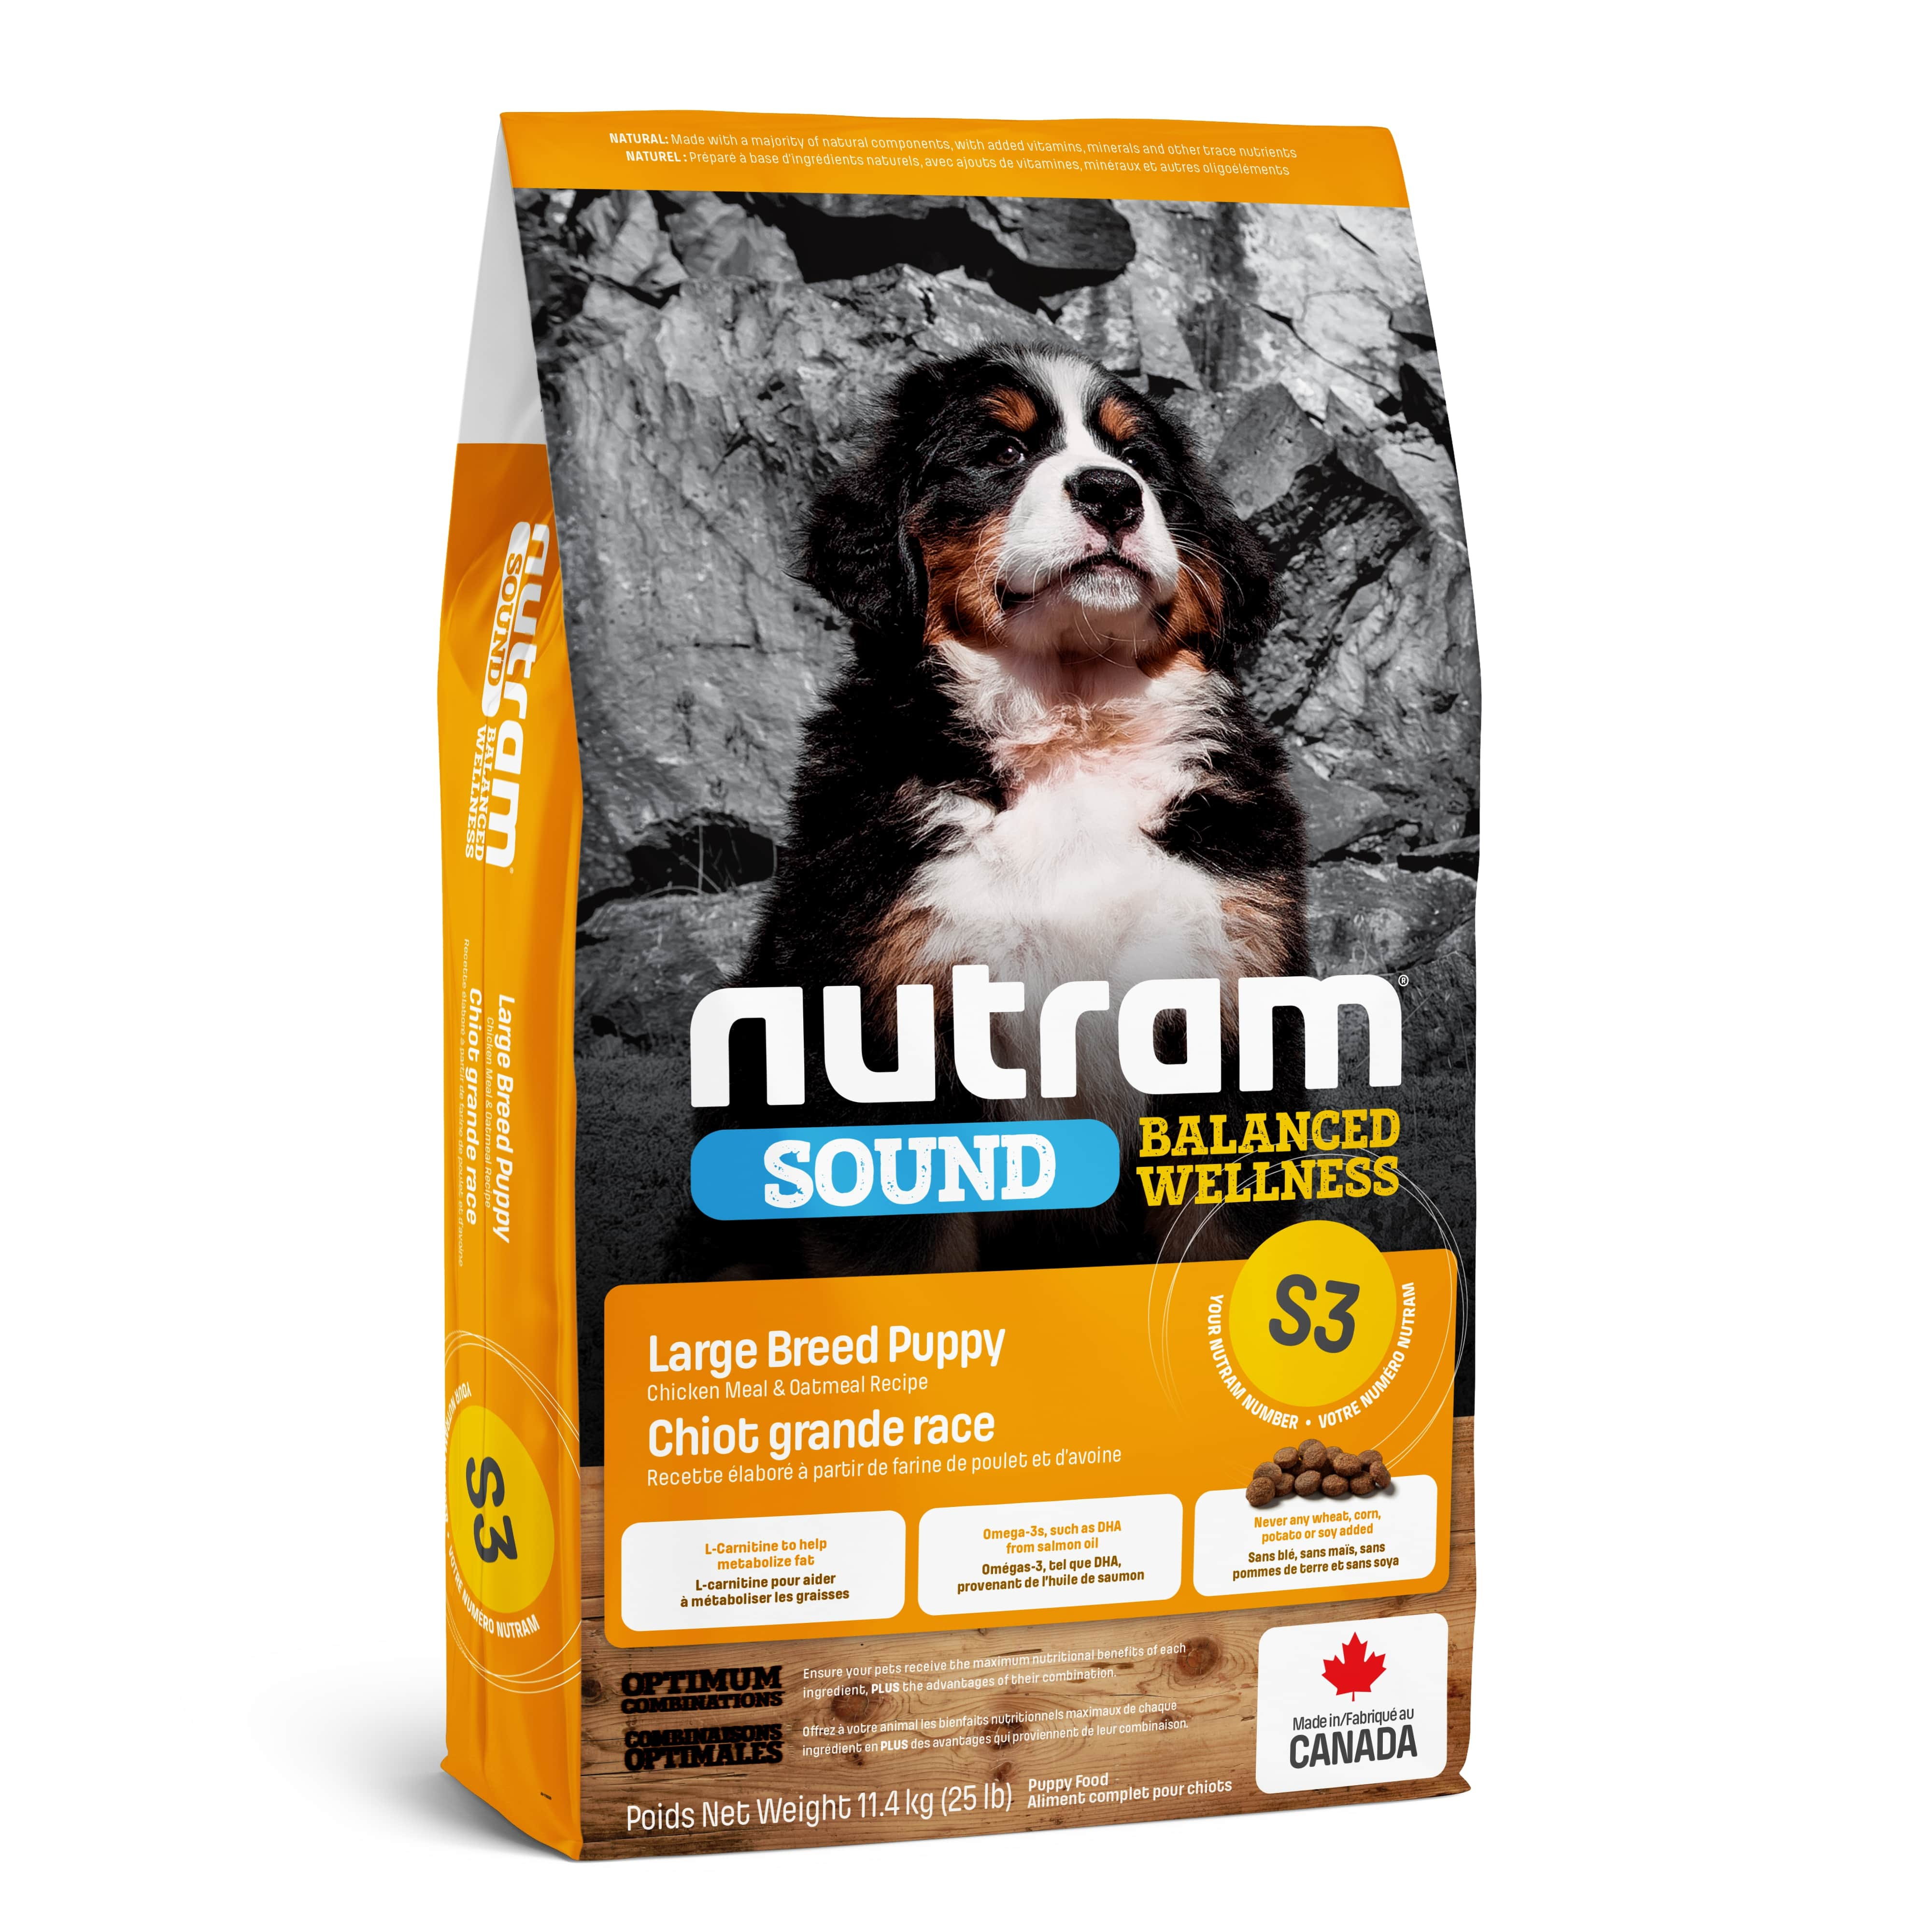 S3 Nutram Sound Balanced Wellness® Natural Large Breed Puppy Food